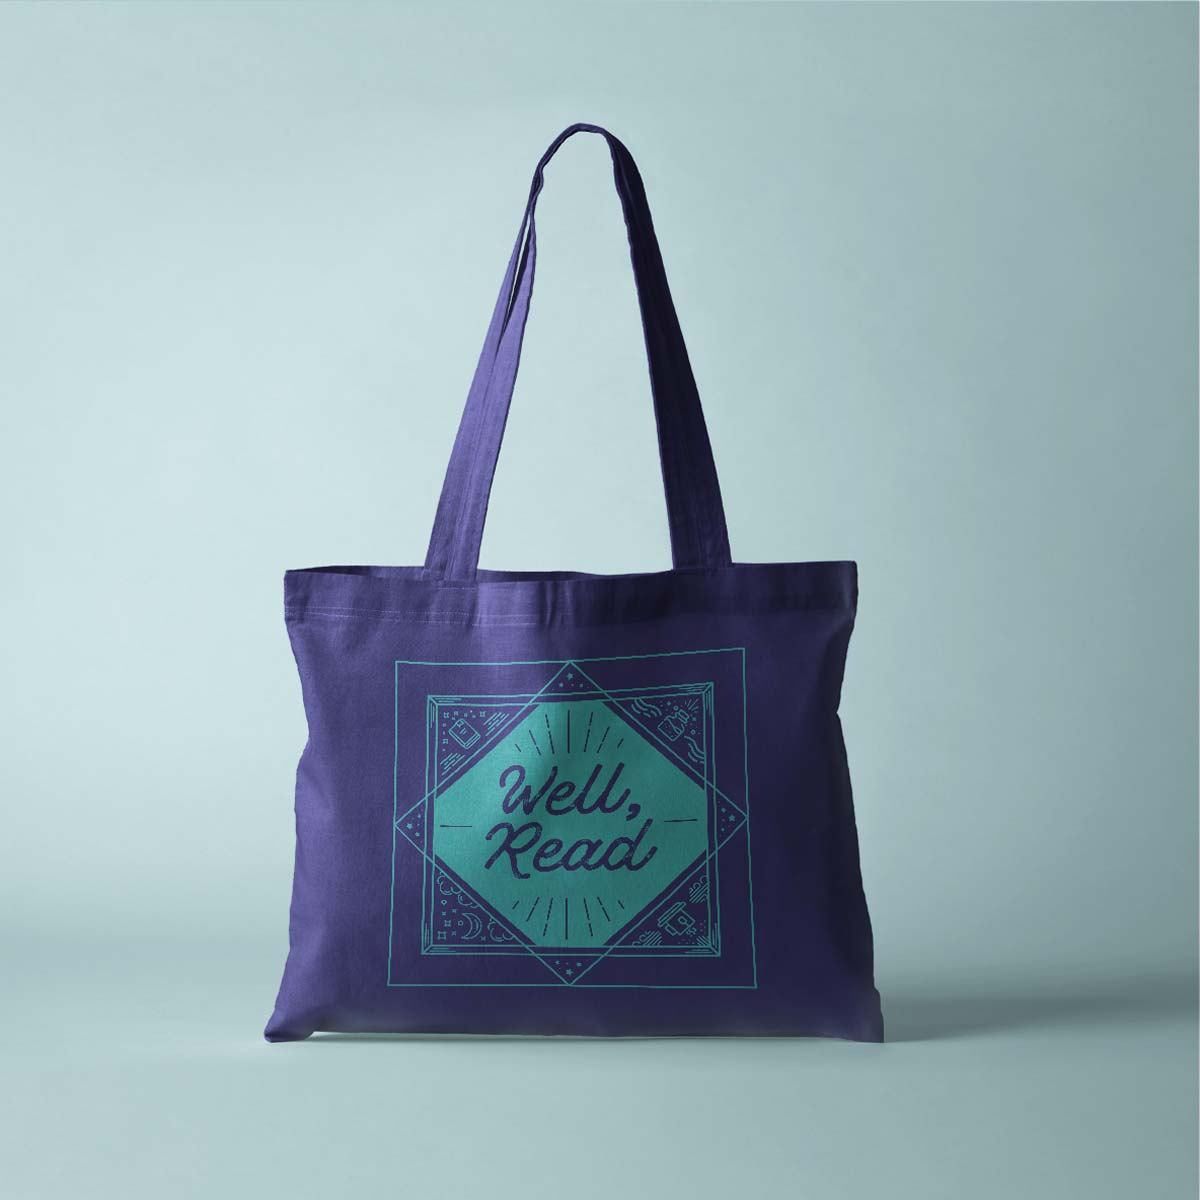 Graphic Design for Ackerly Green Publishing: Well, read Tote Bag